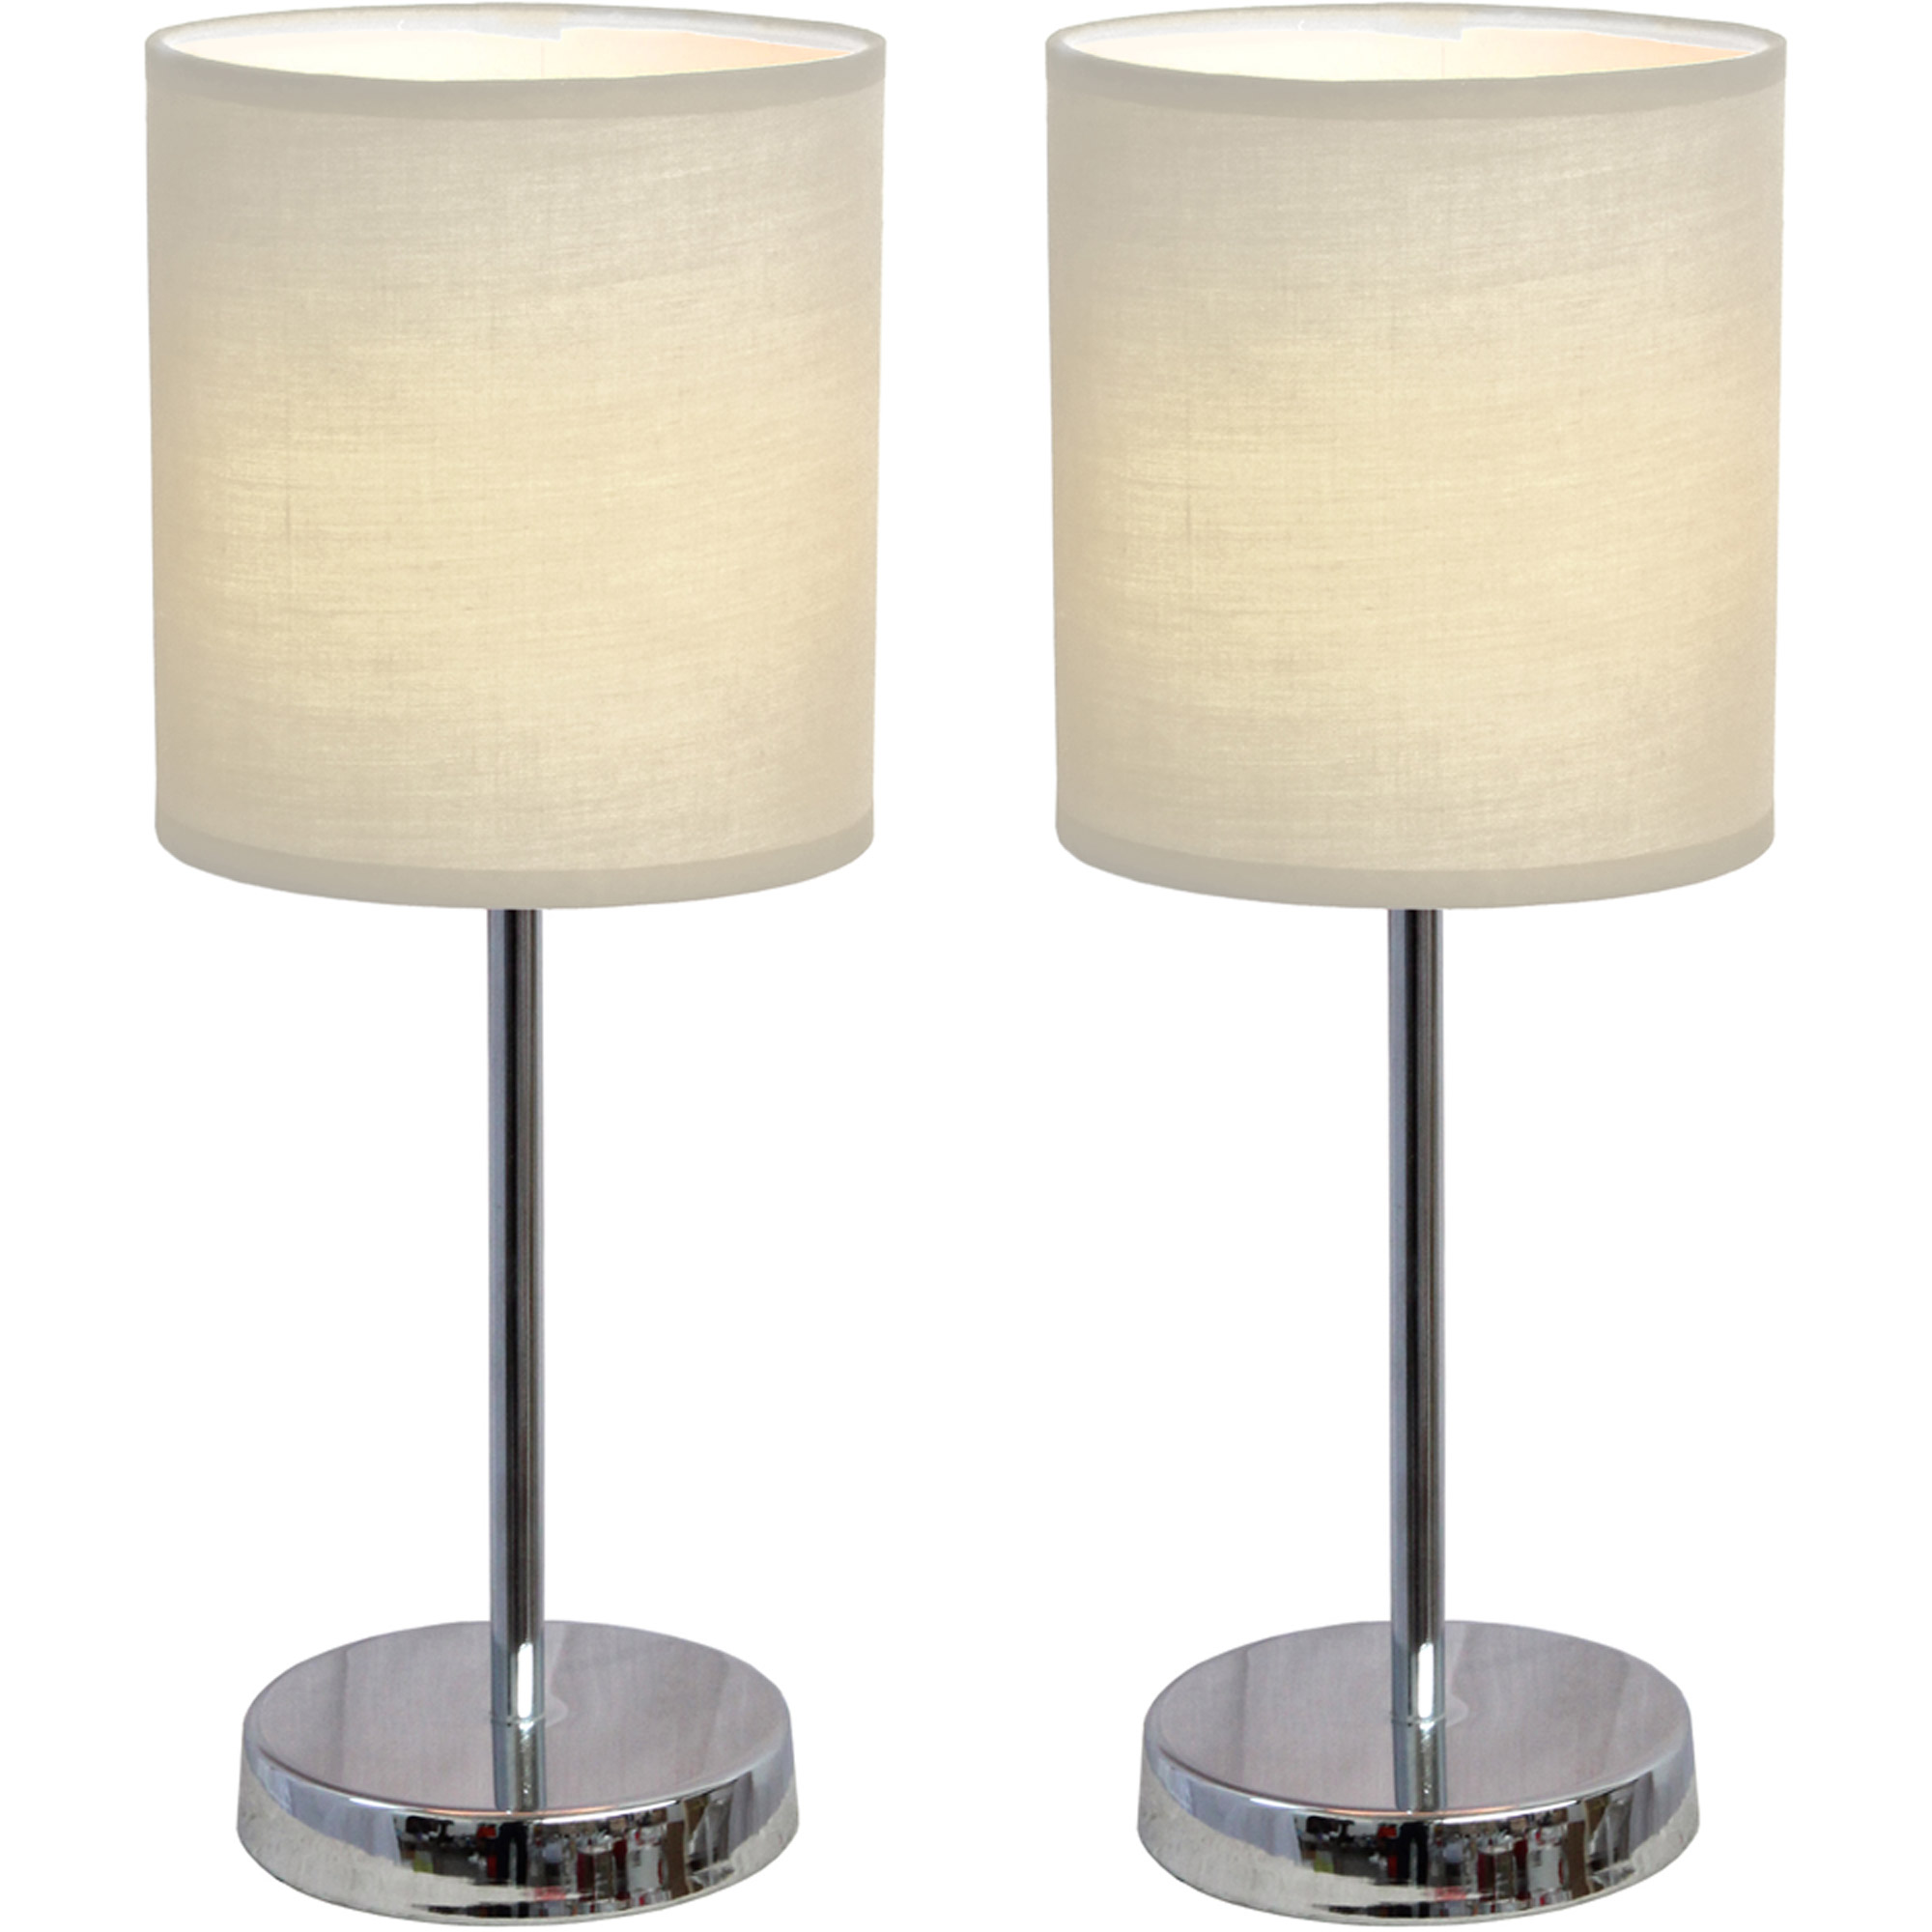 Simple Table Lamp 10 Benefits Of Simple Table Lamp Warisan Lighting